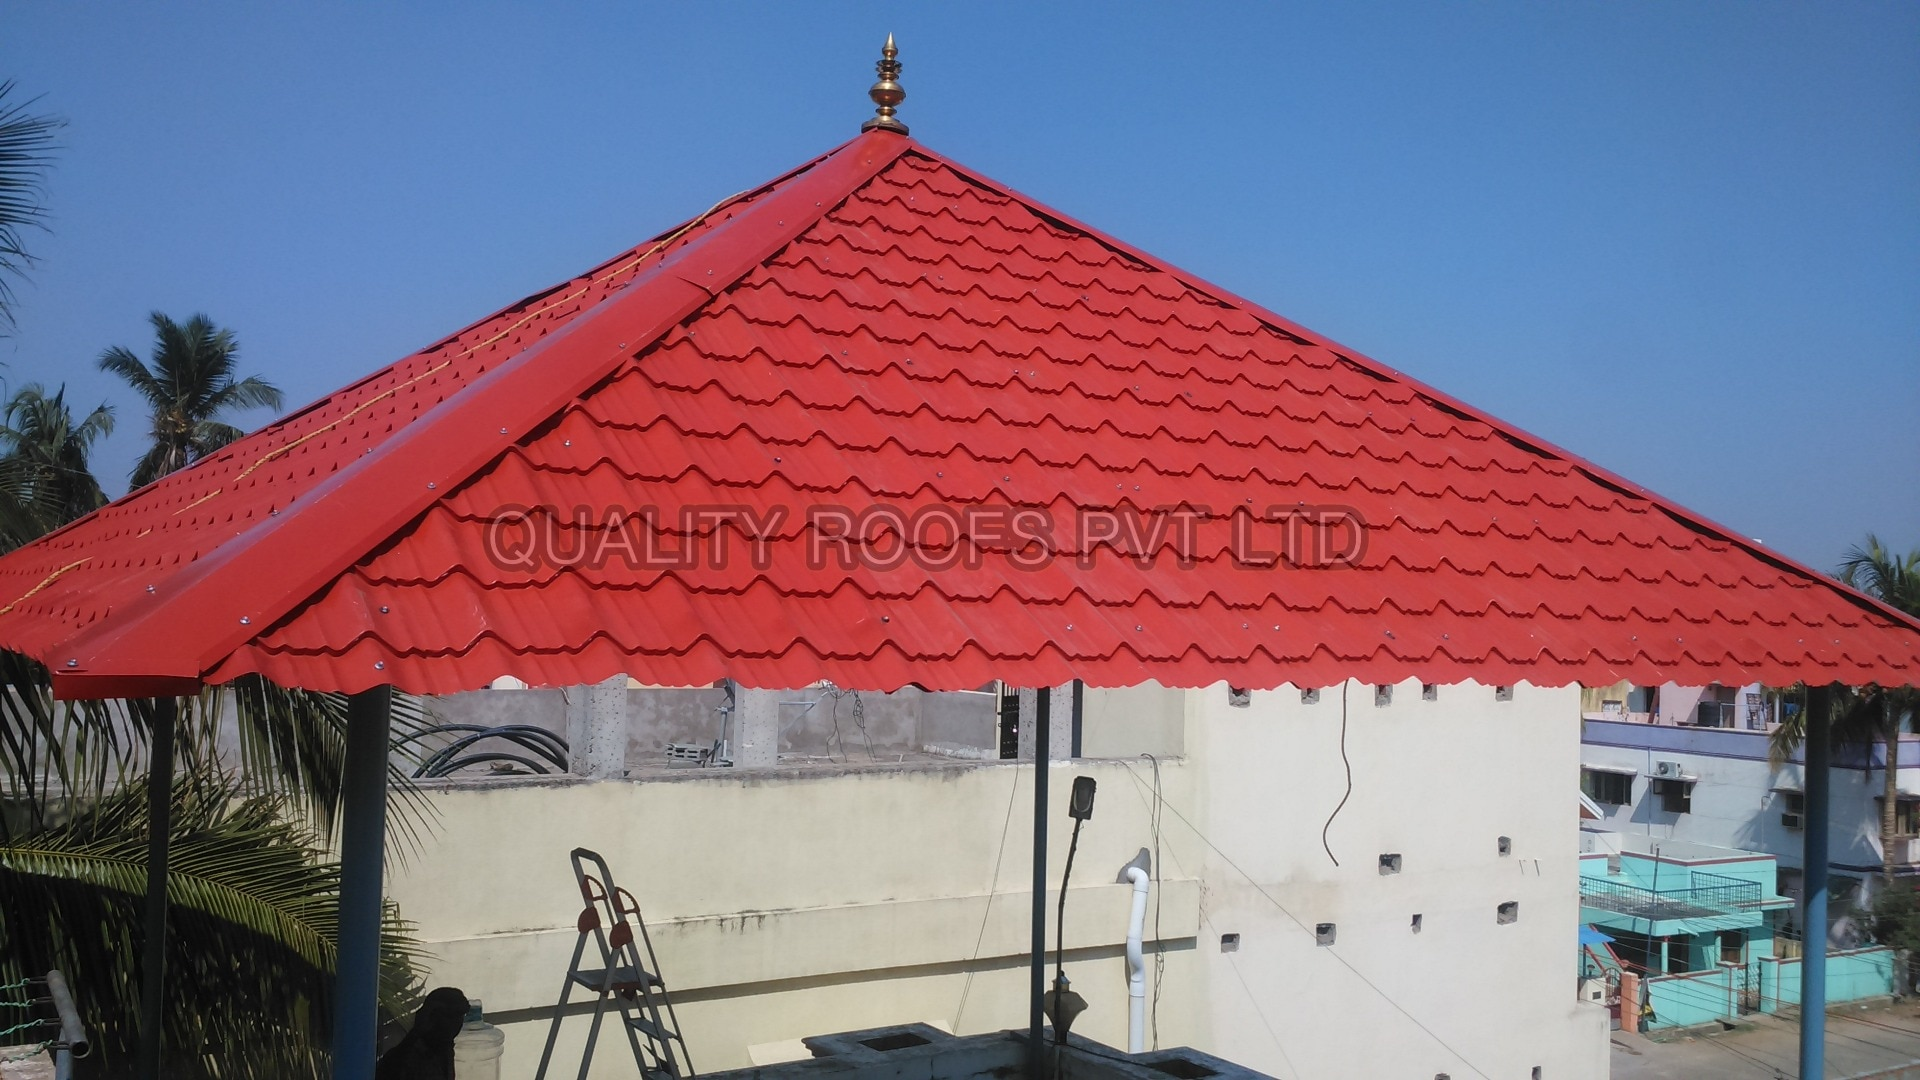 QUALITY ROOFS PVT LT